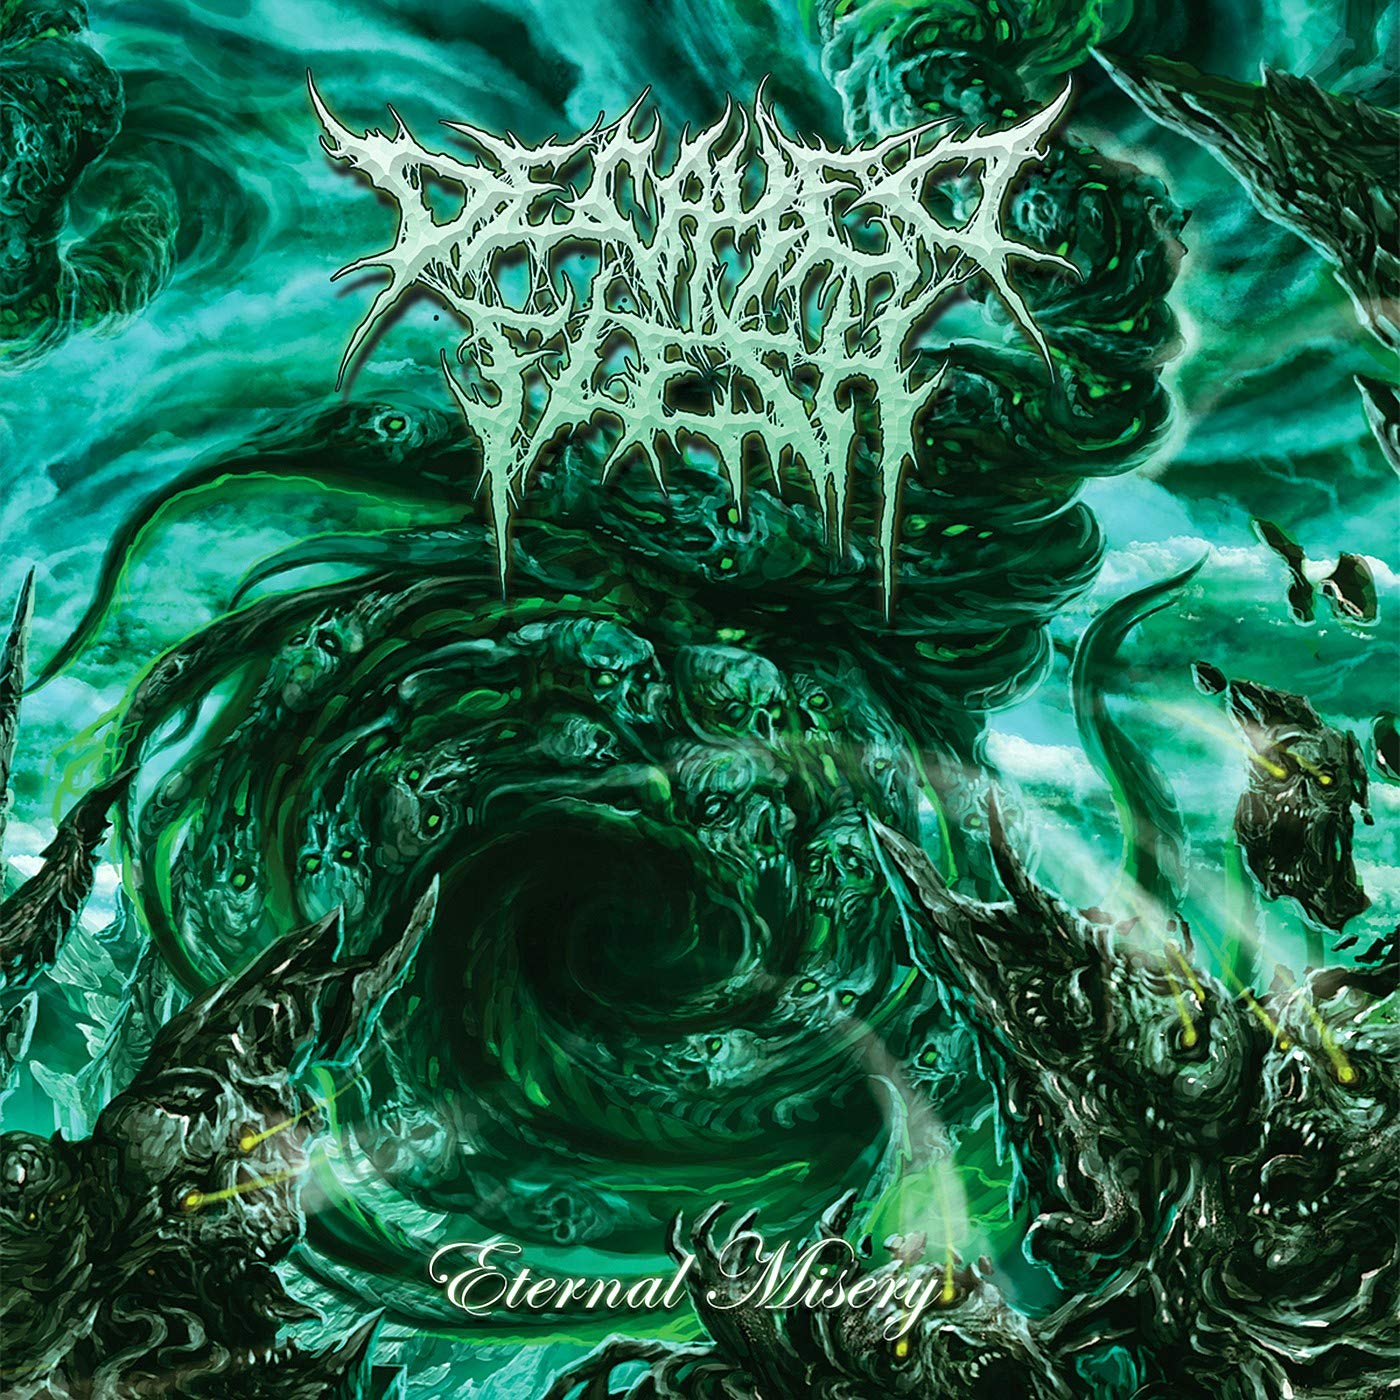 Decayed Flesh - Eternal Misery (2020) [FLAC] Download